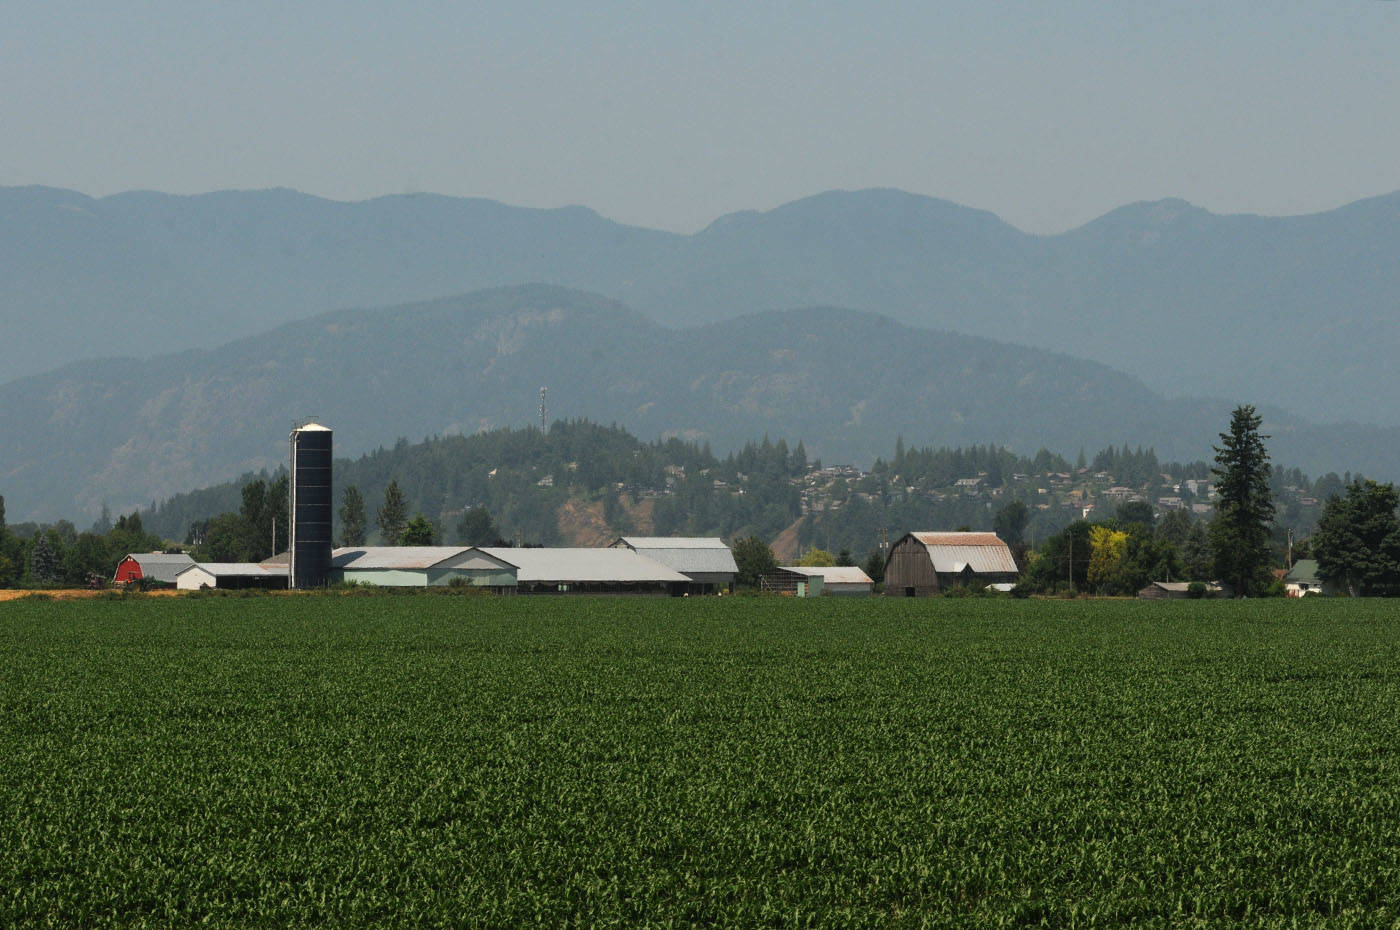 Little Mountain is seen in this view of Chilliwack, looking northwest from Gibson Road on Tuesday, July 6, 2021. (Jenna Hauck/ Chilliwack Progress)